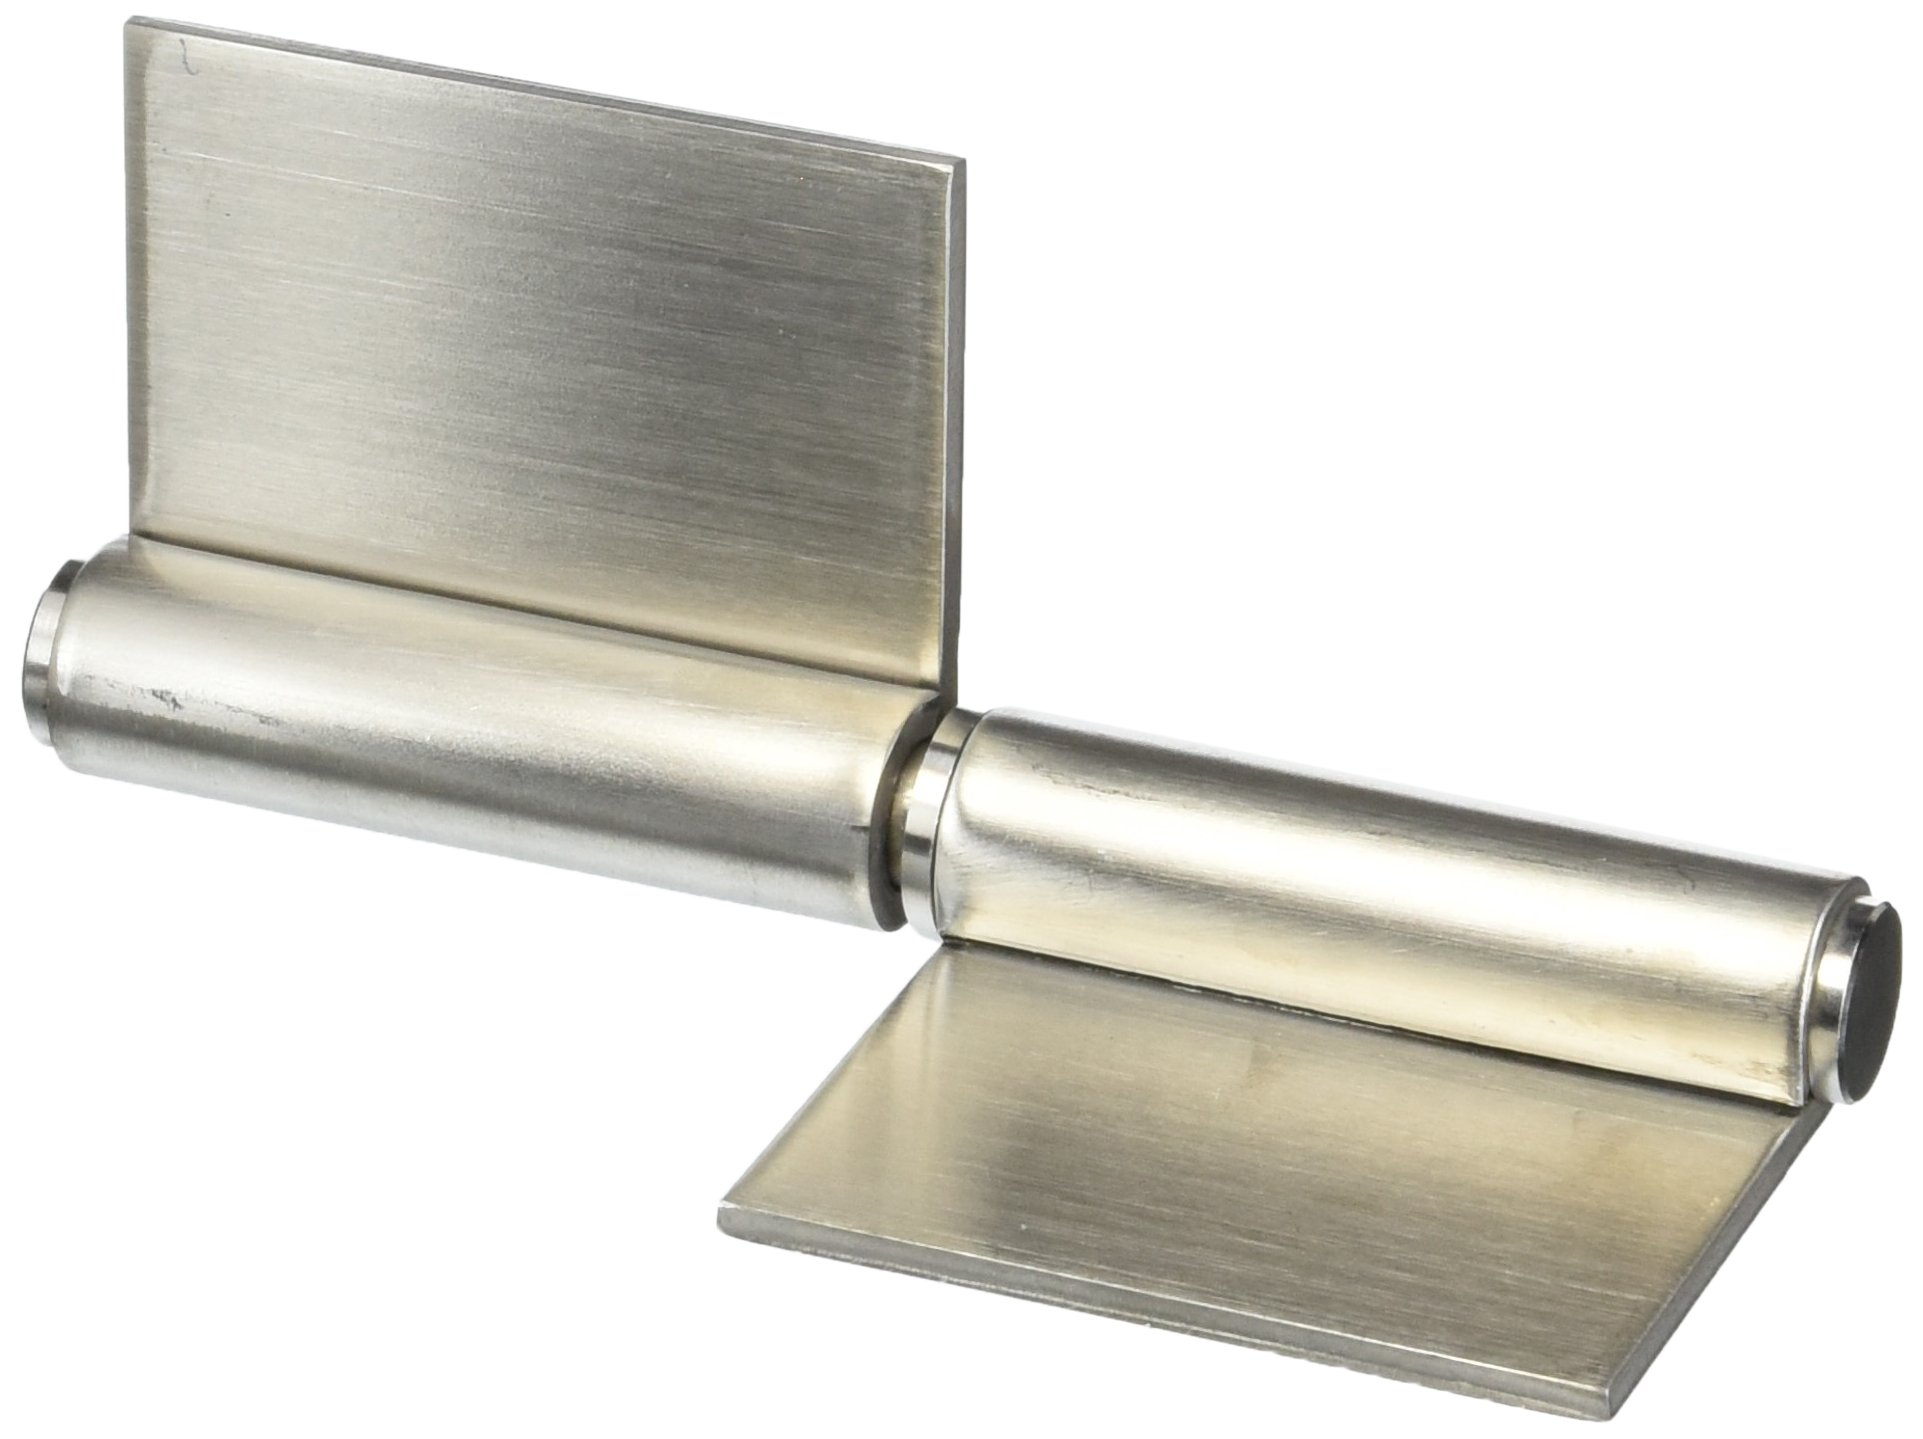 Sugatsune S-6166-6-R Weld On Lift Off Hinge, Stainless Steel 304, Brushed Finish, Right Handedness, 3mm Leaf Thickness, 110mm Open Width, 18mm Pin Diameter, 152mm Height